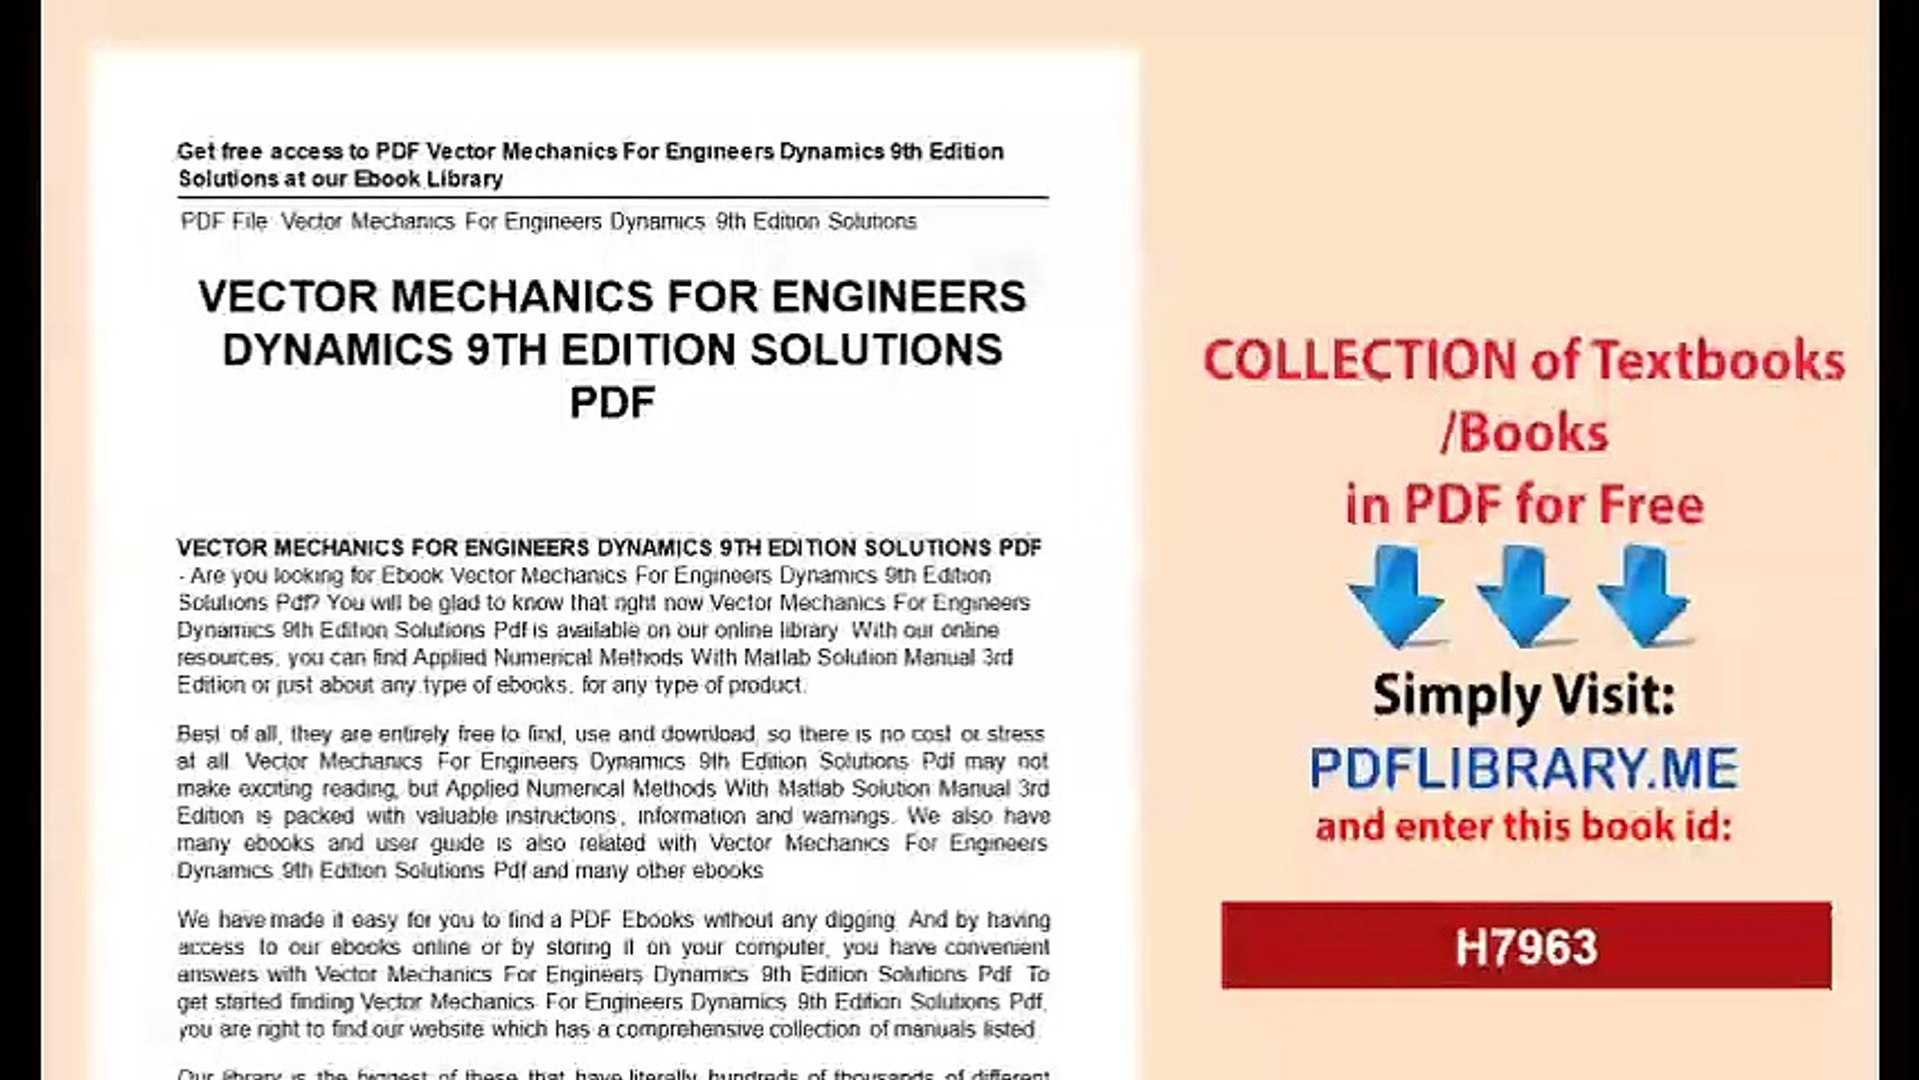 Vector Mechanics For Engineers Dynamics 9th Edition Solutions